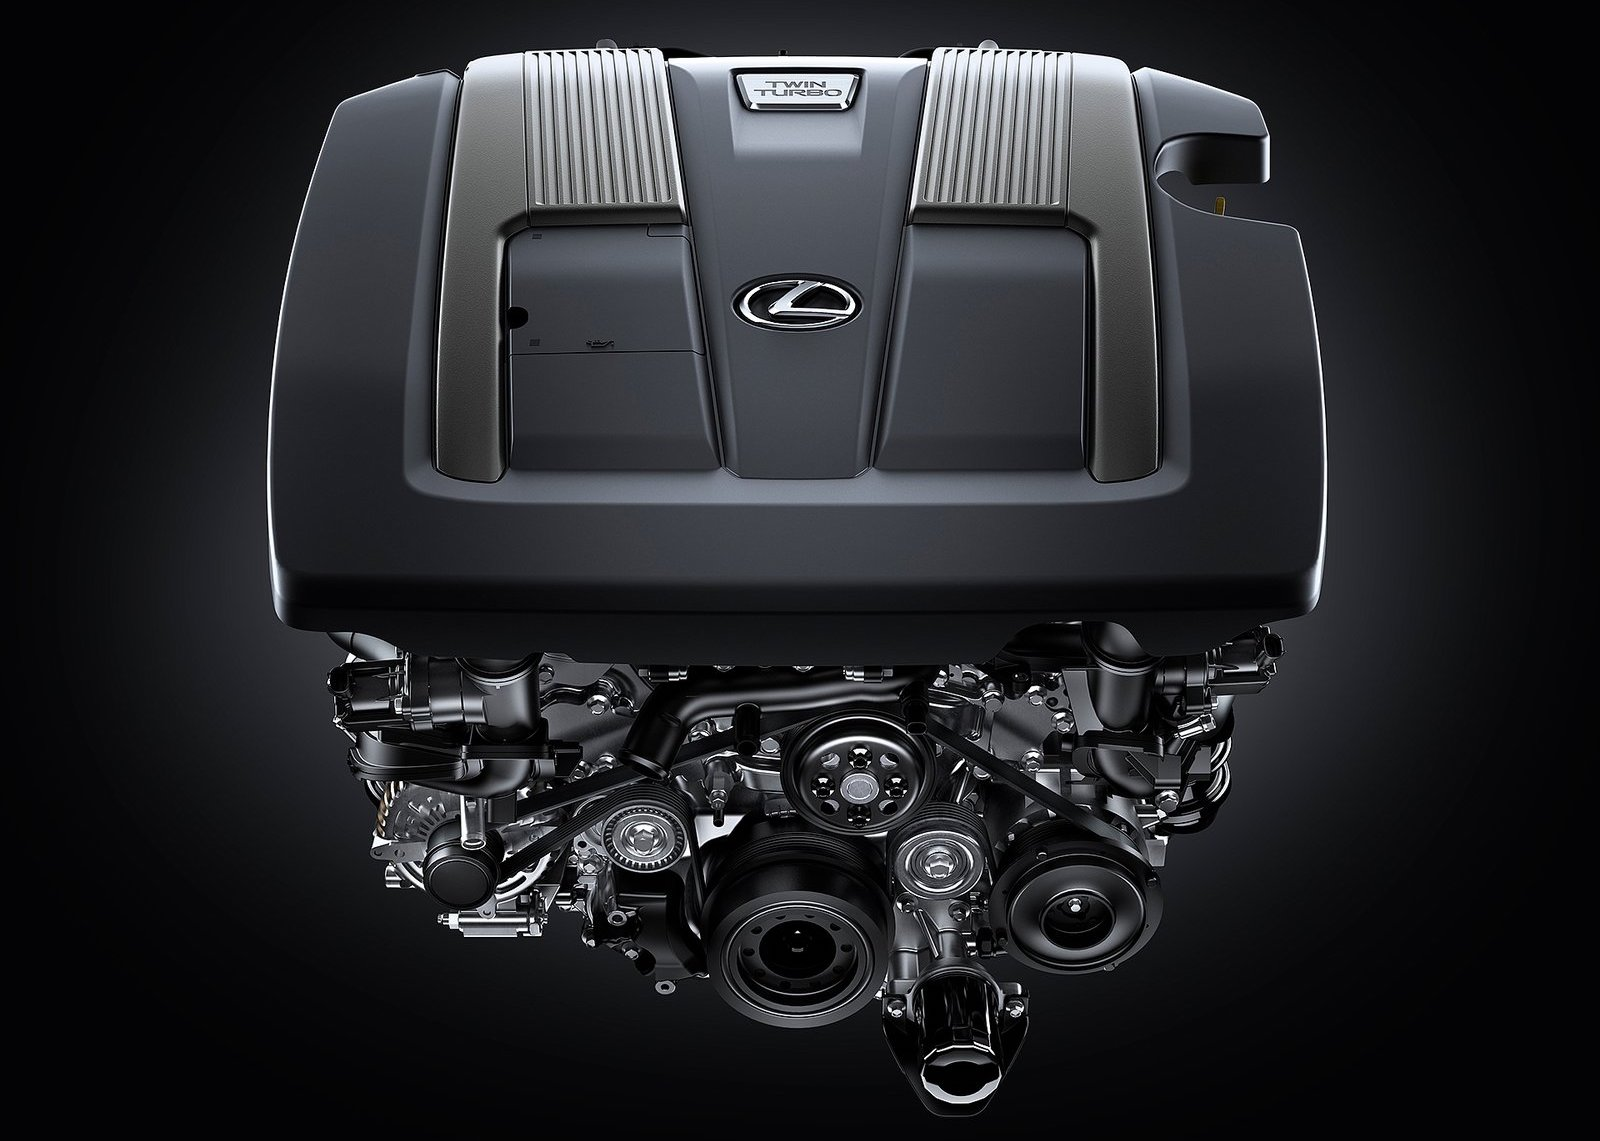 next-land-cruiser-reported-to-sport-2-8l-turbo-diesel-engine-image-1